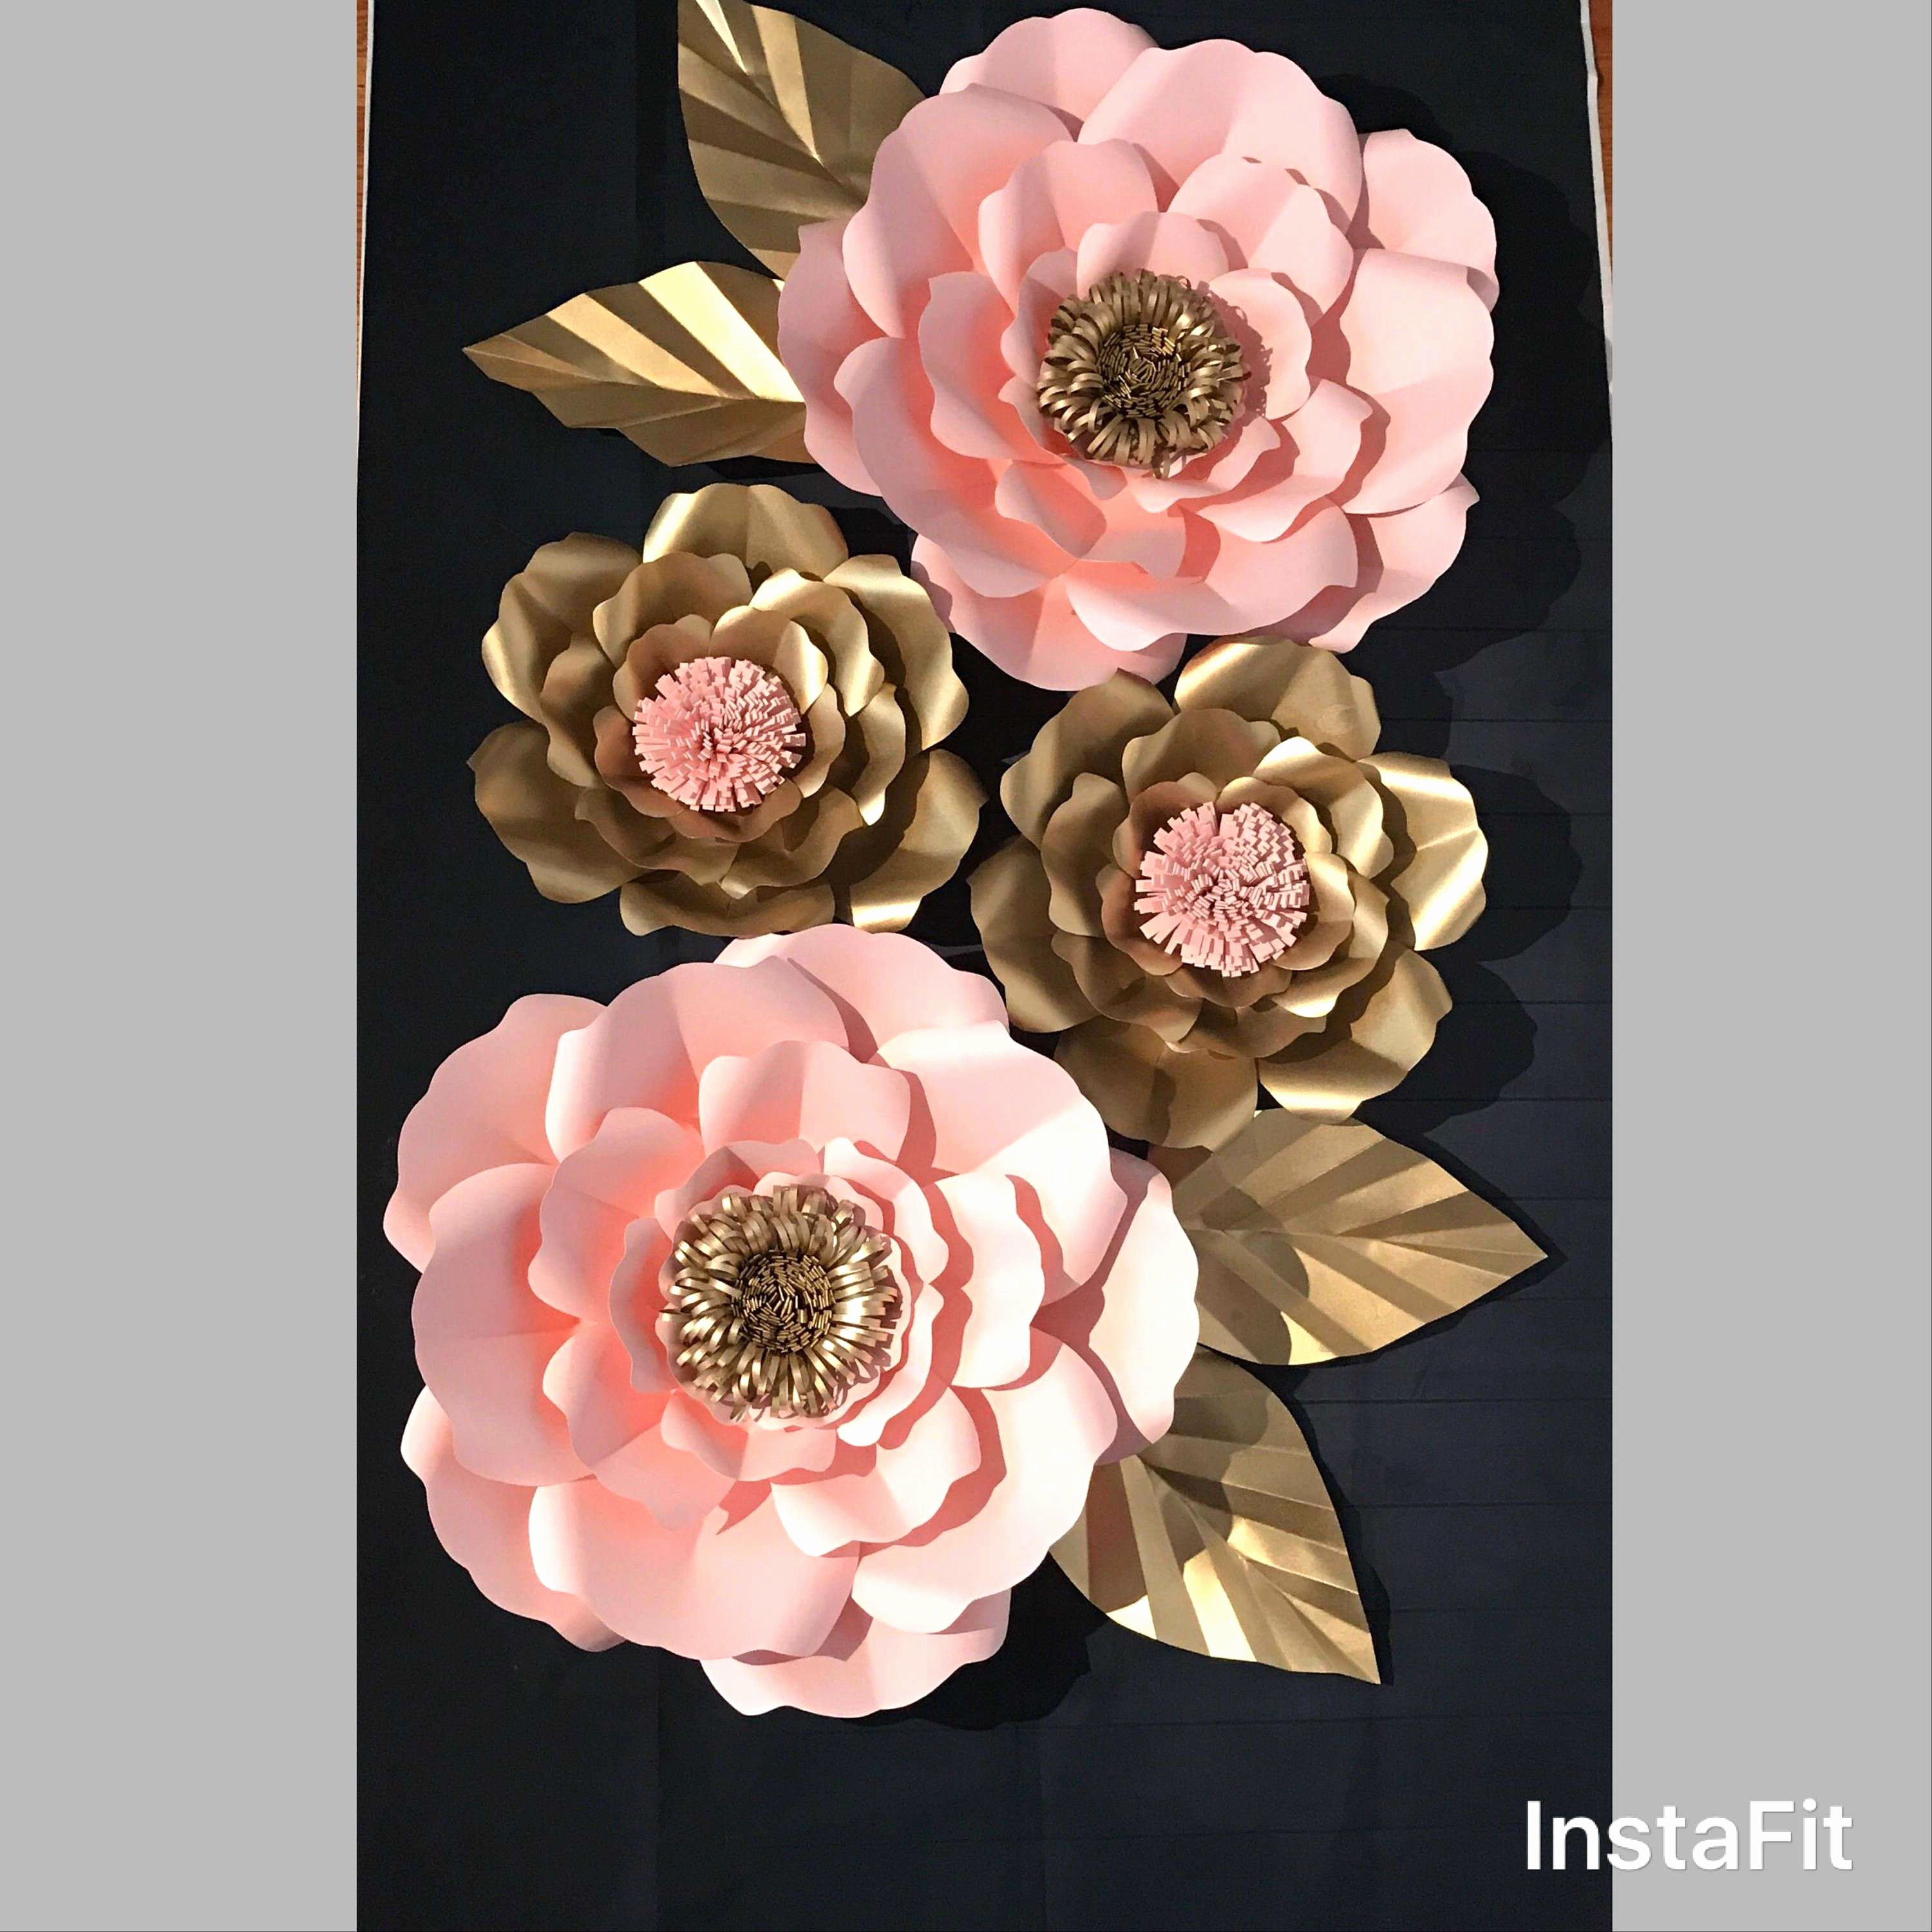 bamboo vase ideas of ideas for wedding pictures elegant vases vase centerpieces ideas with ideas for wedding pictures inspirational floral decor for home beautiful decor floral decor floral decor 0d